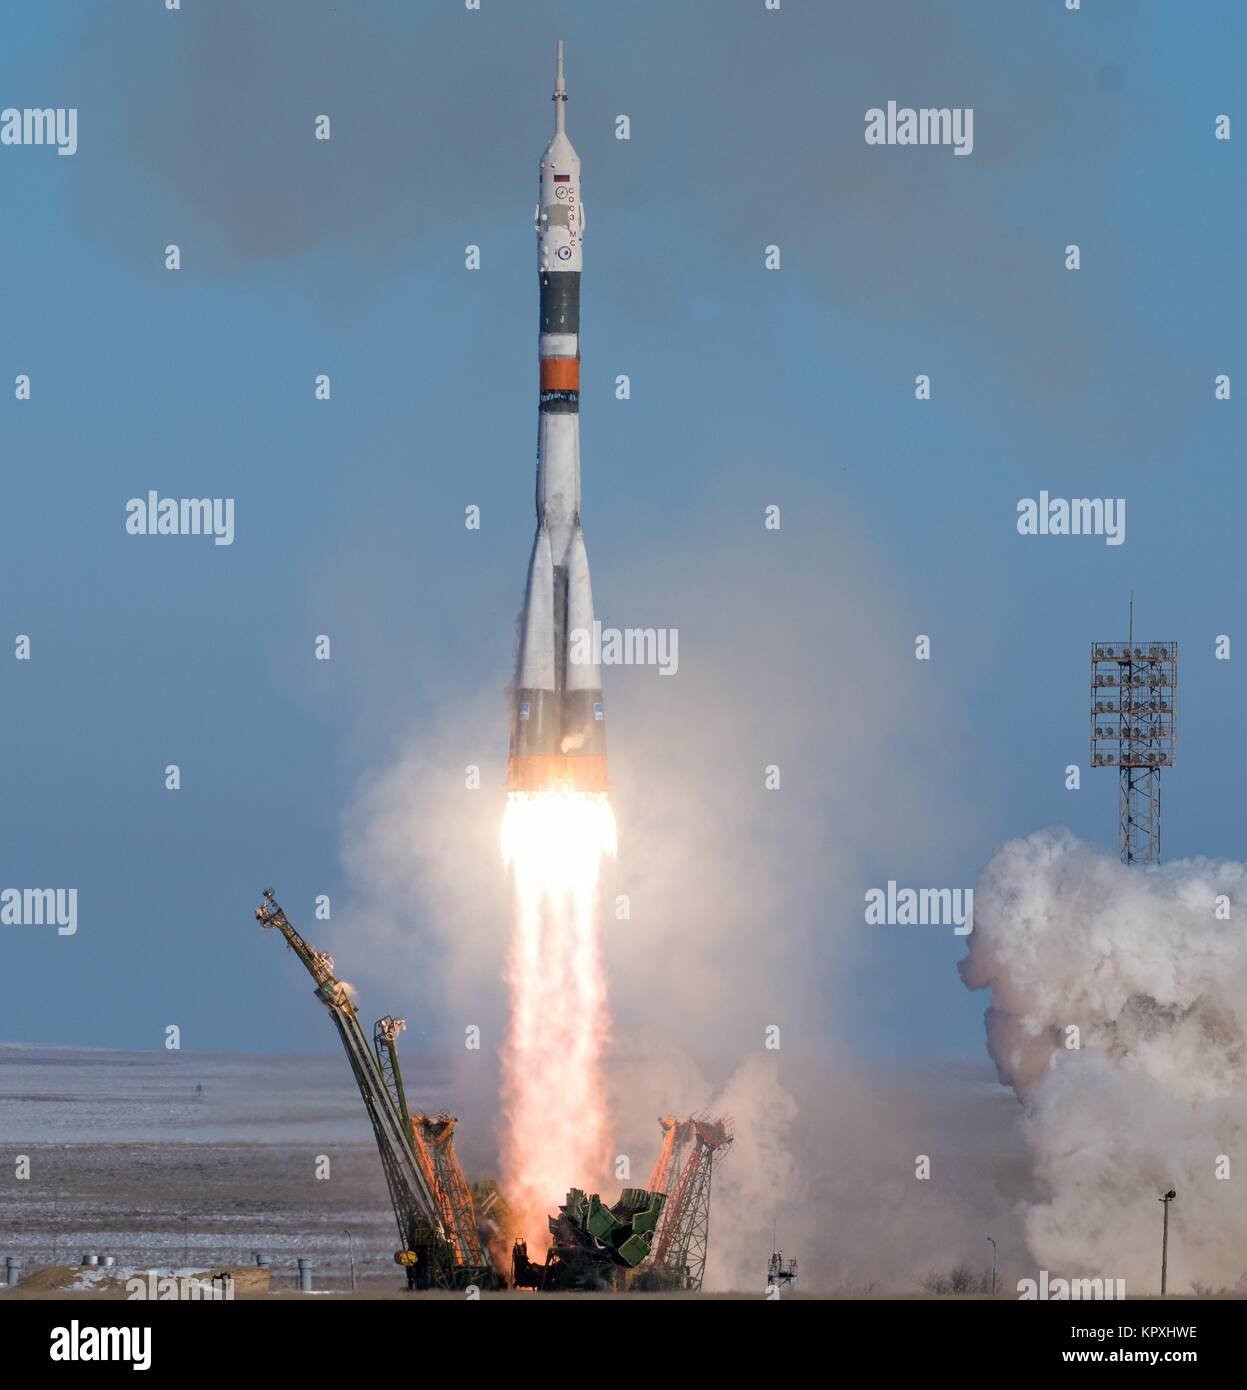 The Russian Soyuz rocket and Soyuz MS-07 spacecraft blast off from the launch pad carrying the International Space - Stock Image